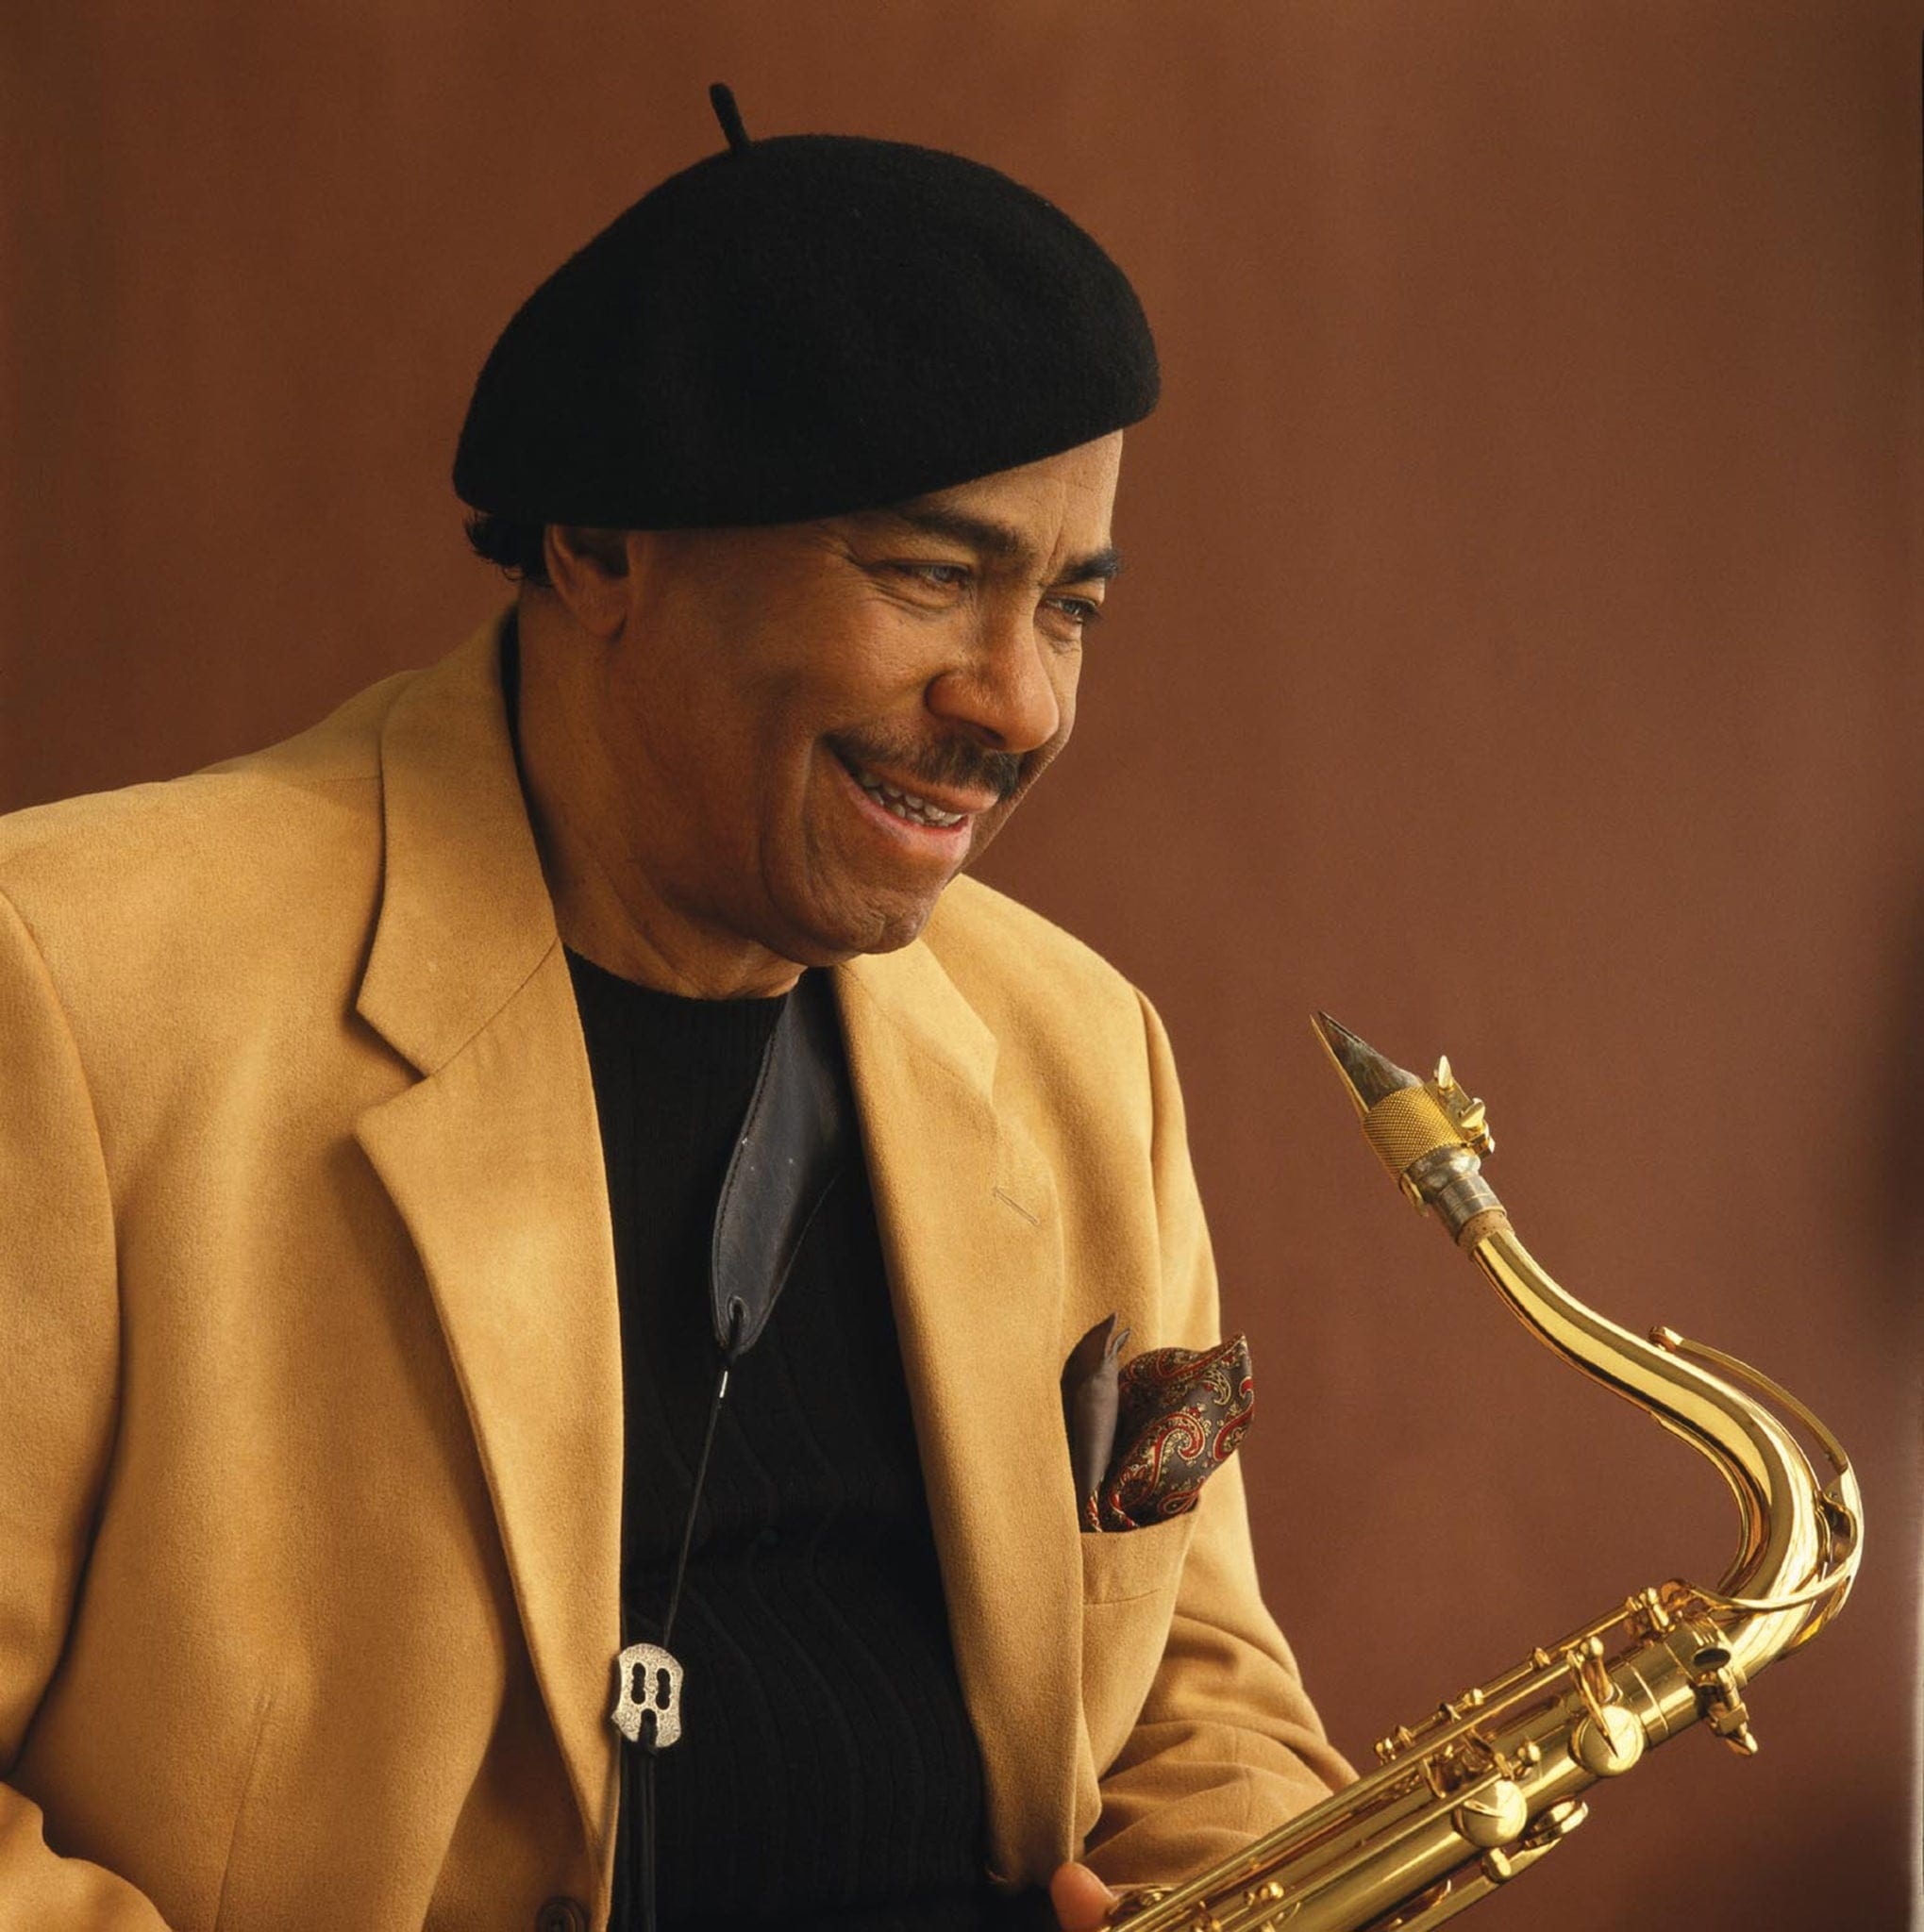 Jazz saxophonist Benny Golson. (Photo by Lisas Stein)